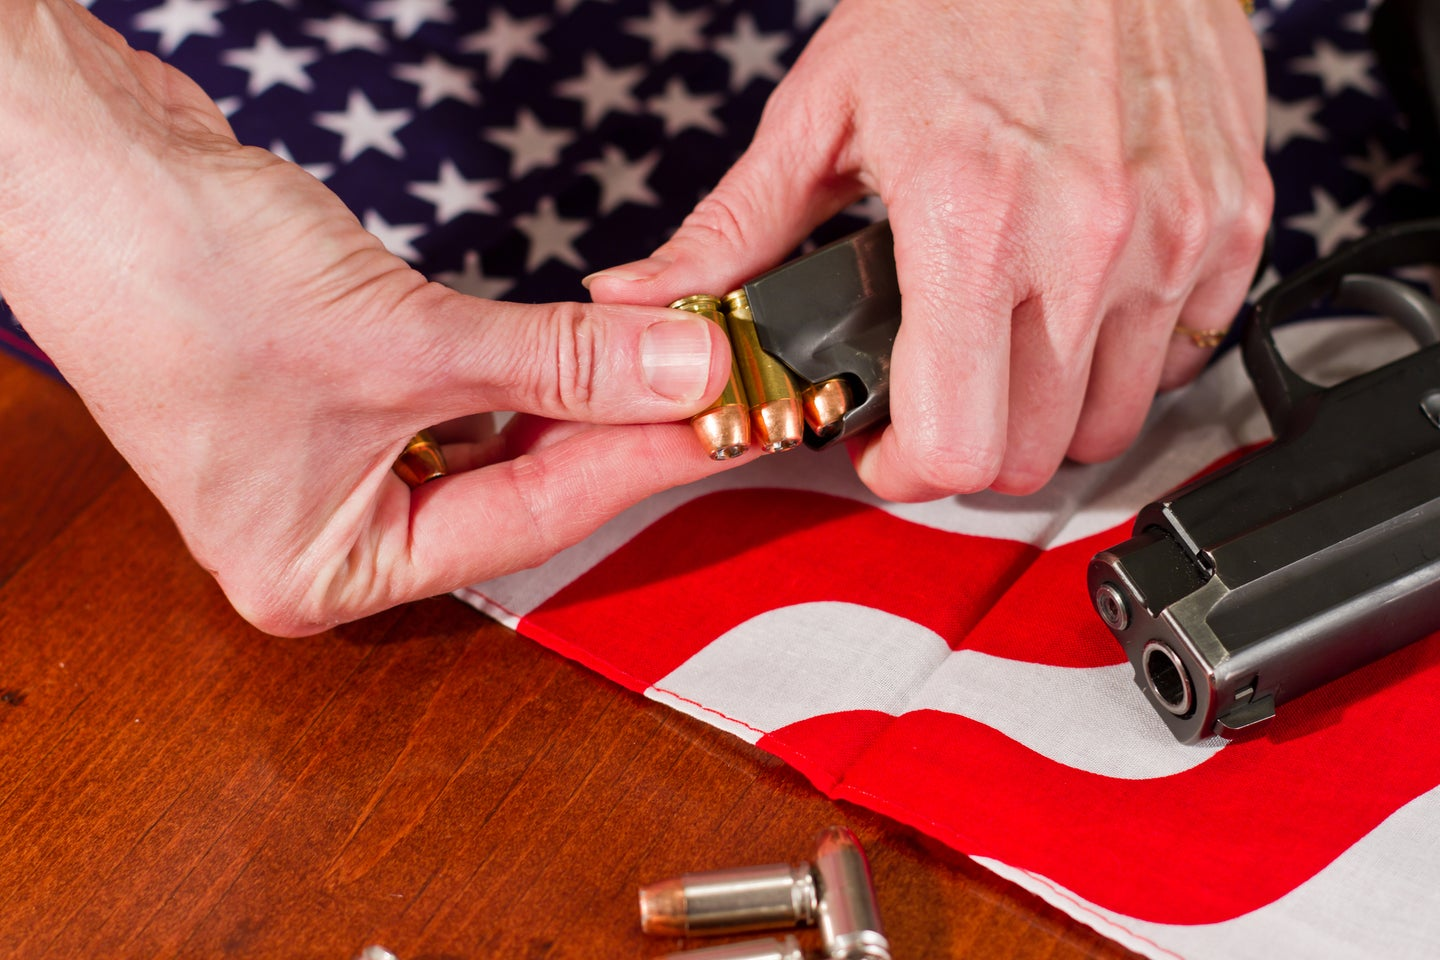 hands load a gun in front of an american flag